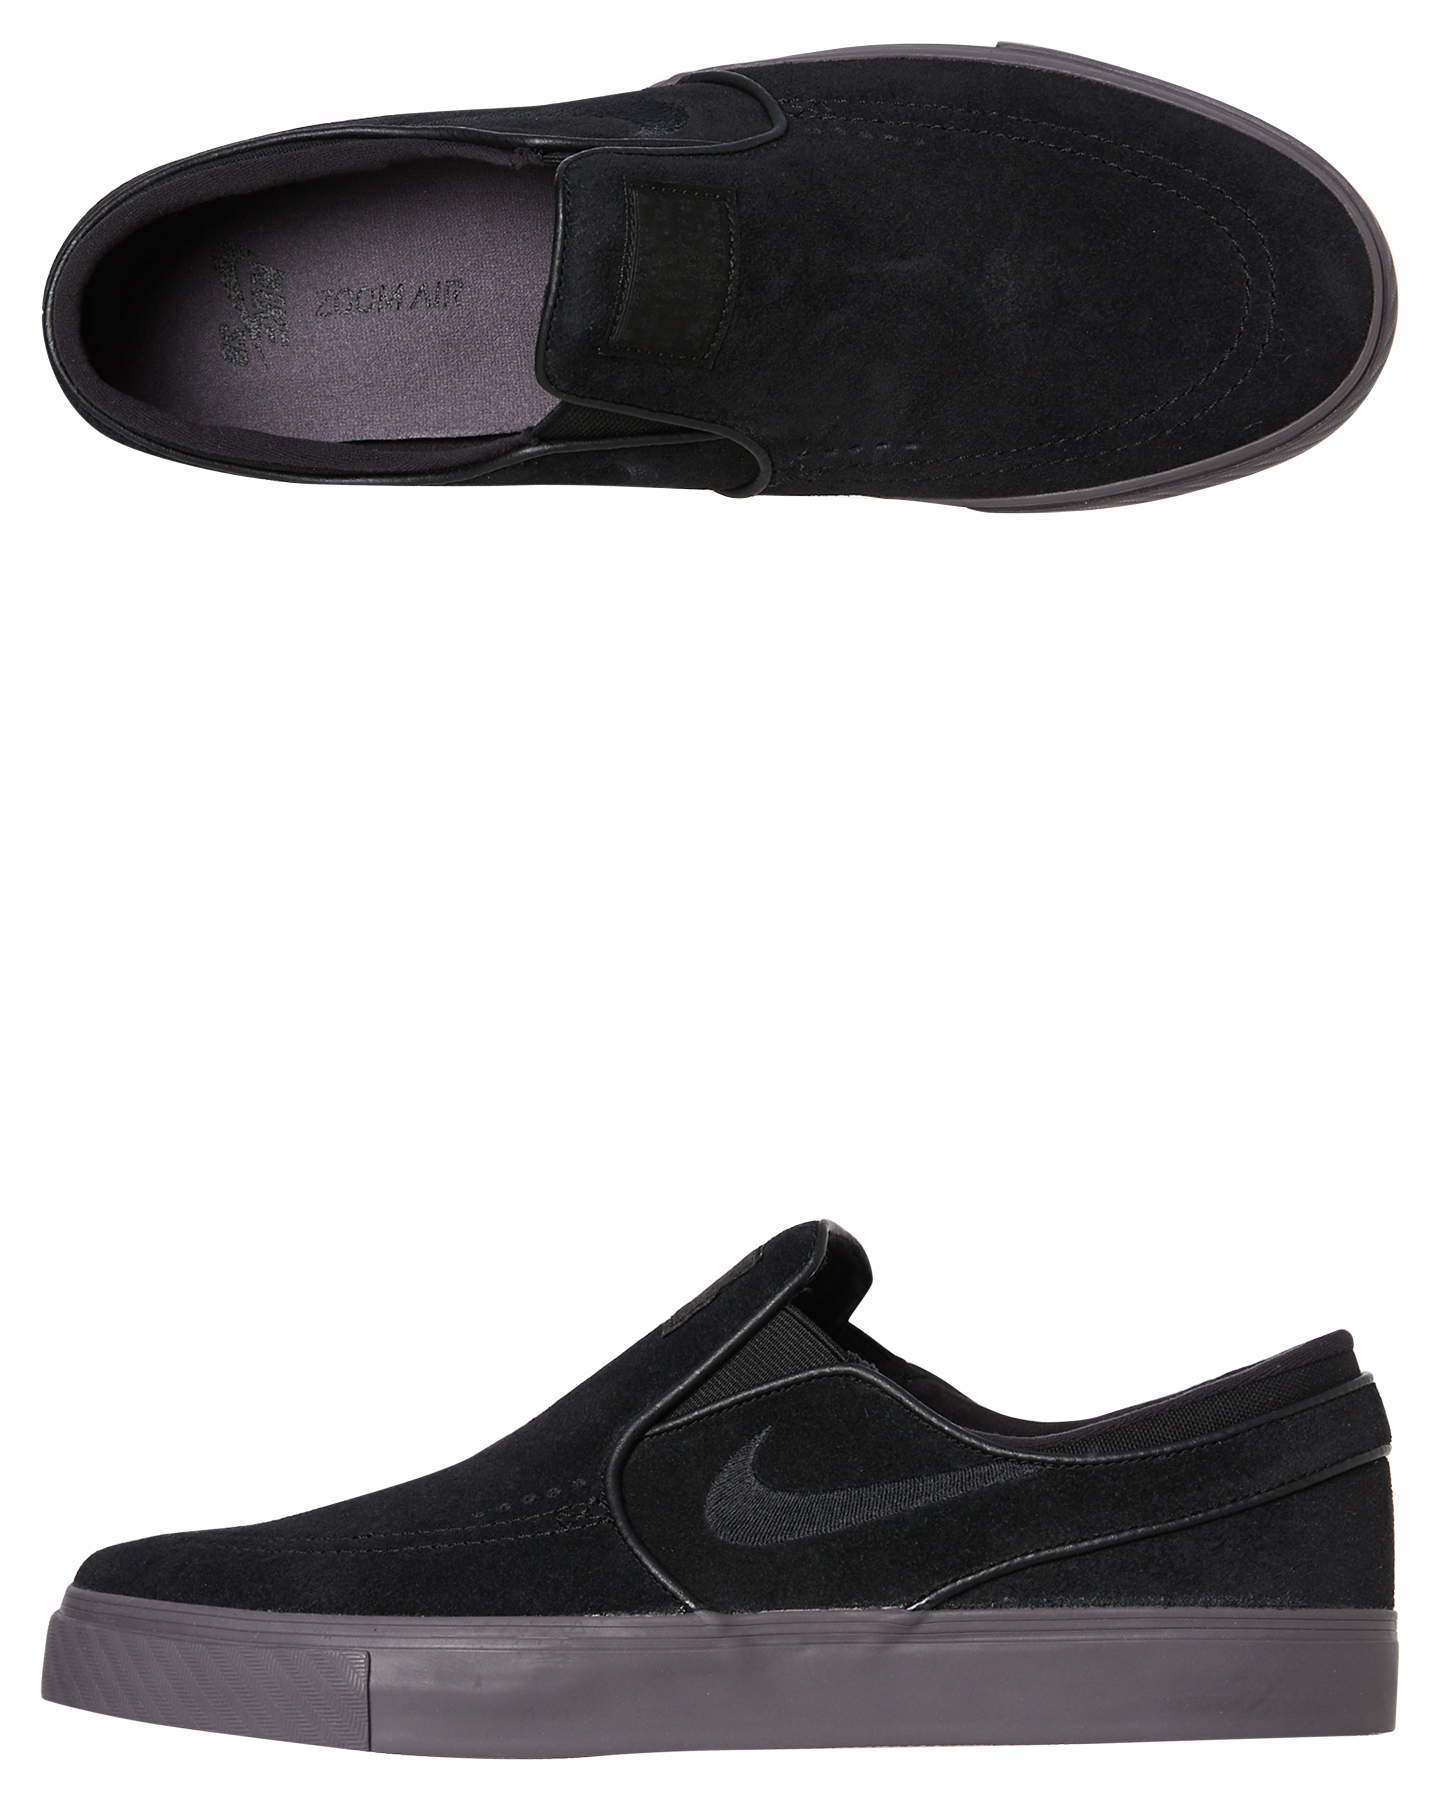 531645bea344 Nike Sb Zoom Stefan Janoski Slip On Shoe - Black Black